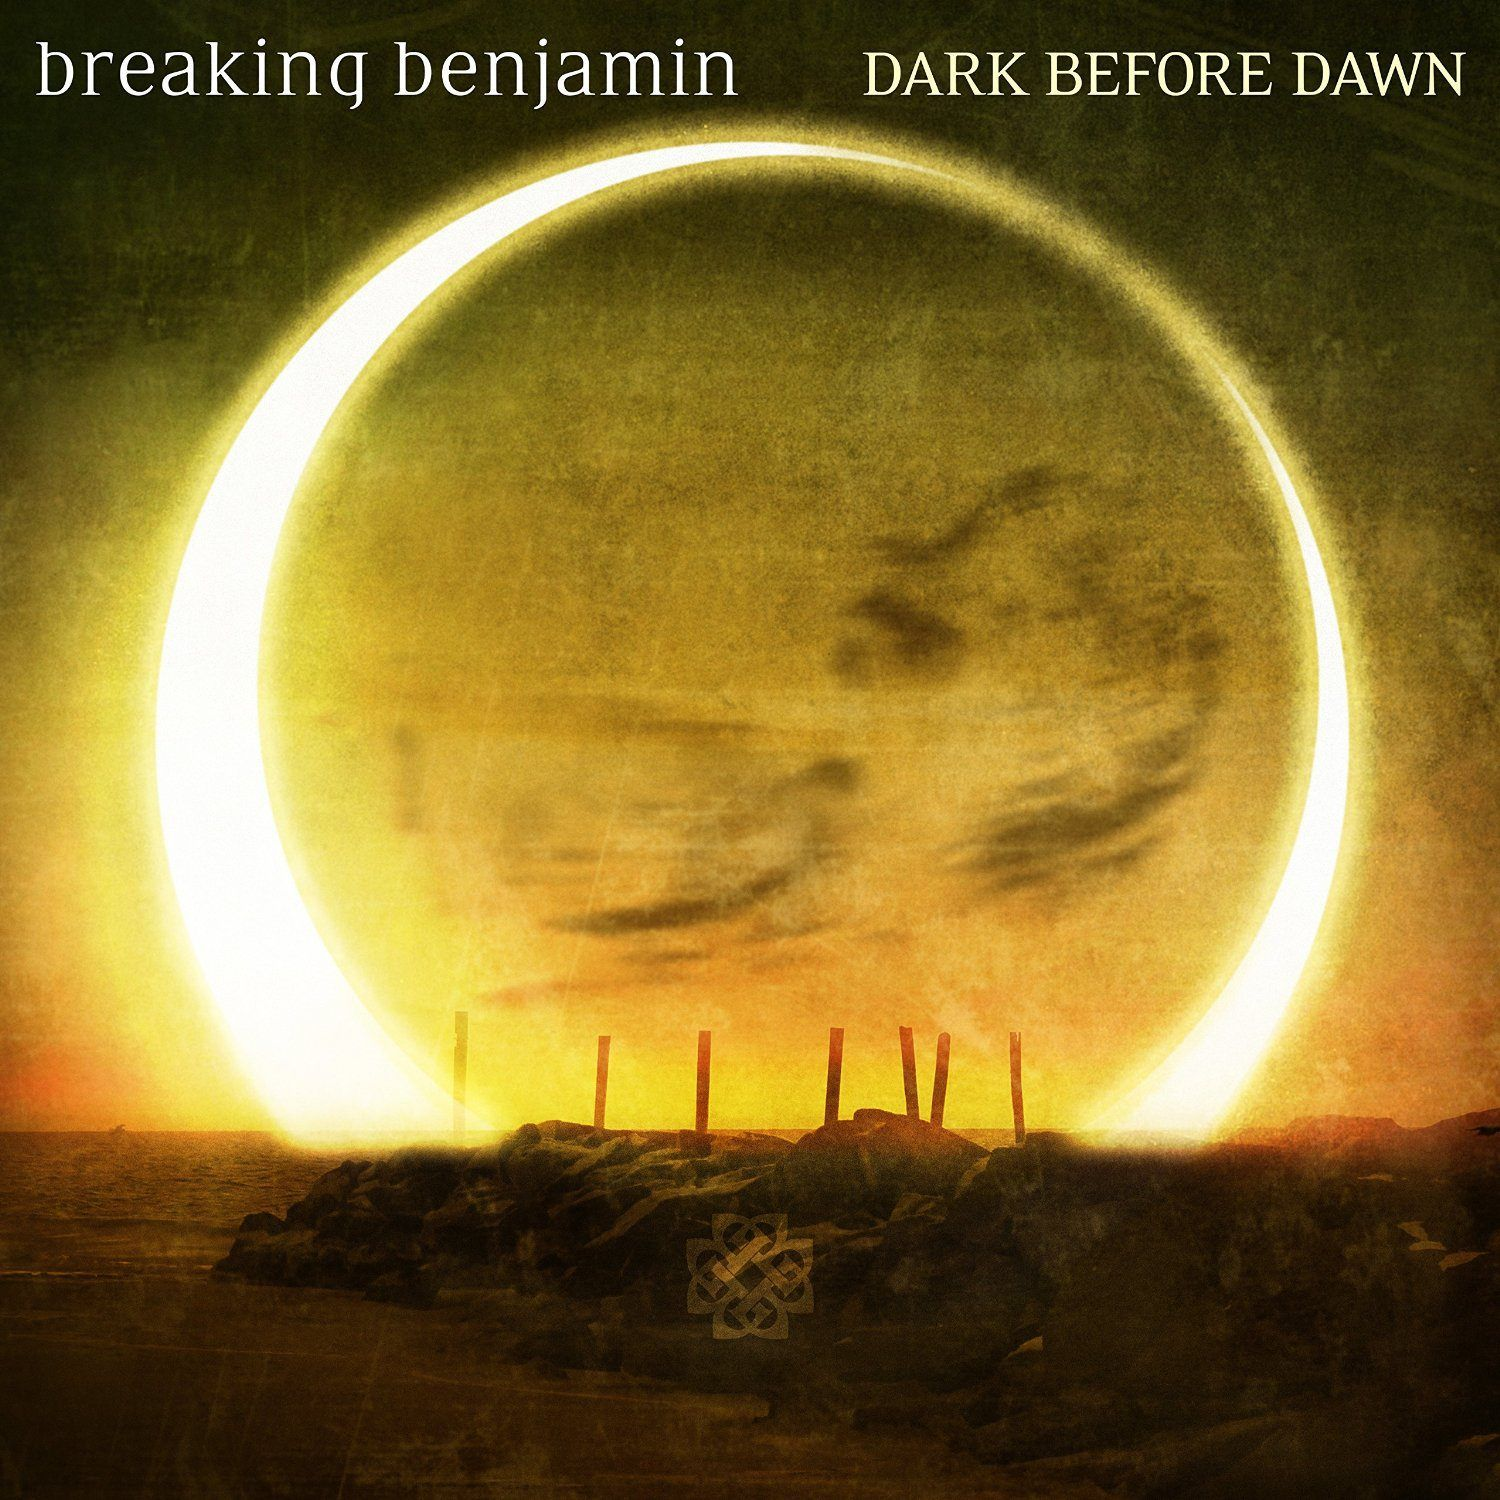 Breaking Benjamin Tops Billboard 200 With 'Dark Before Dawn'